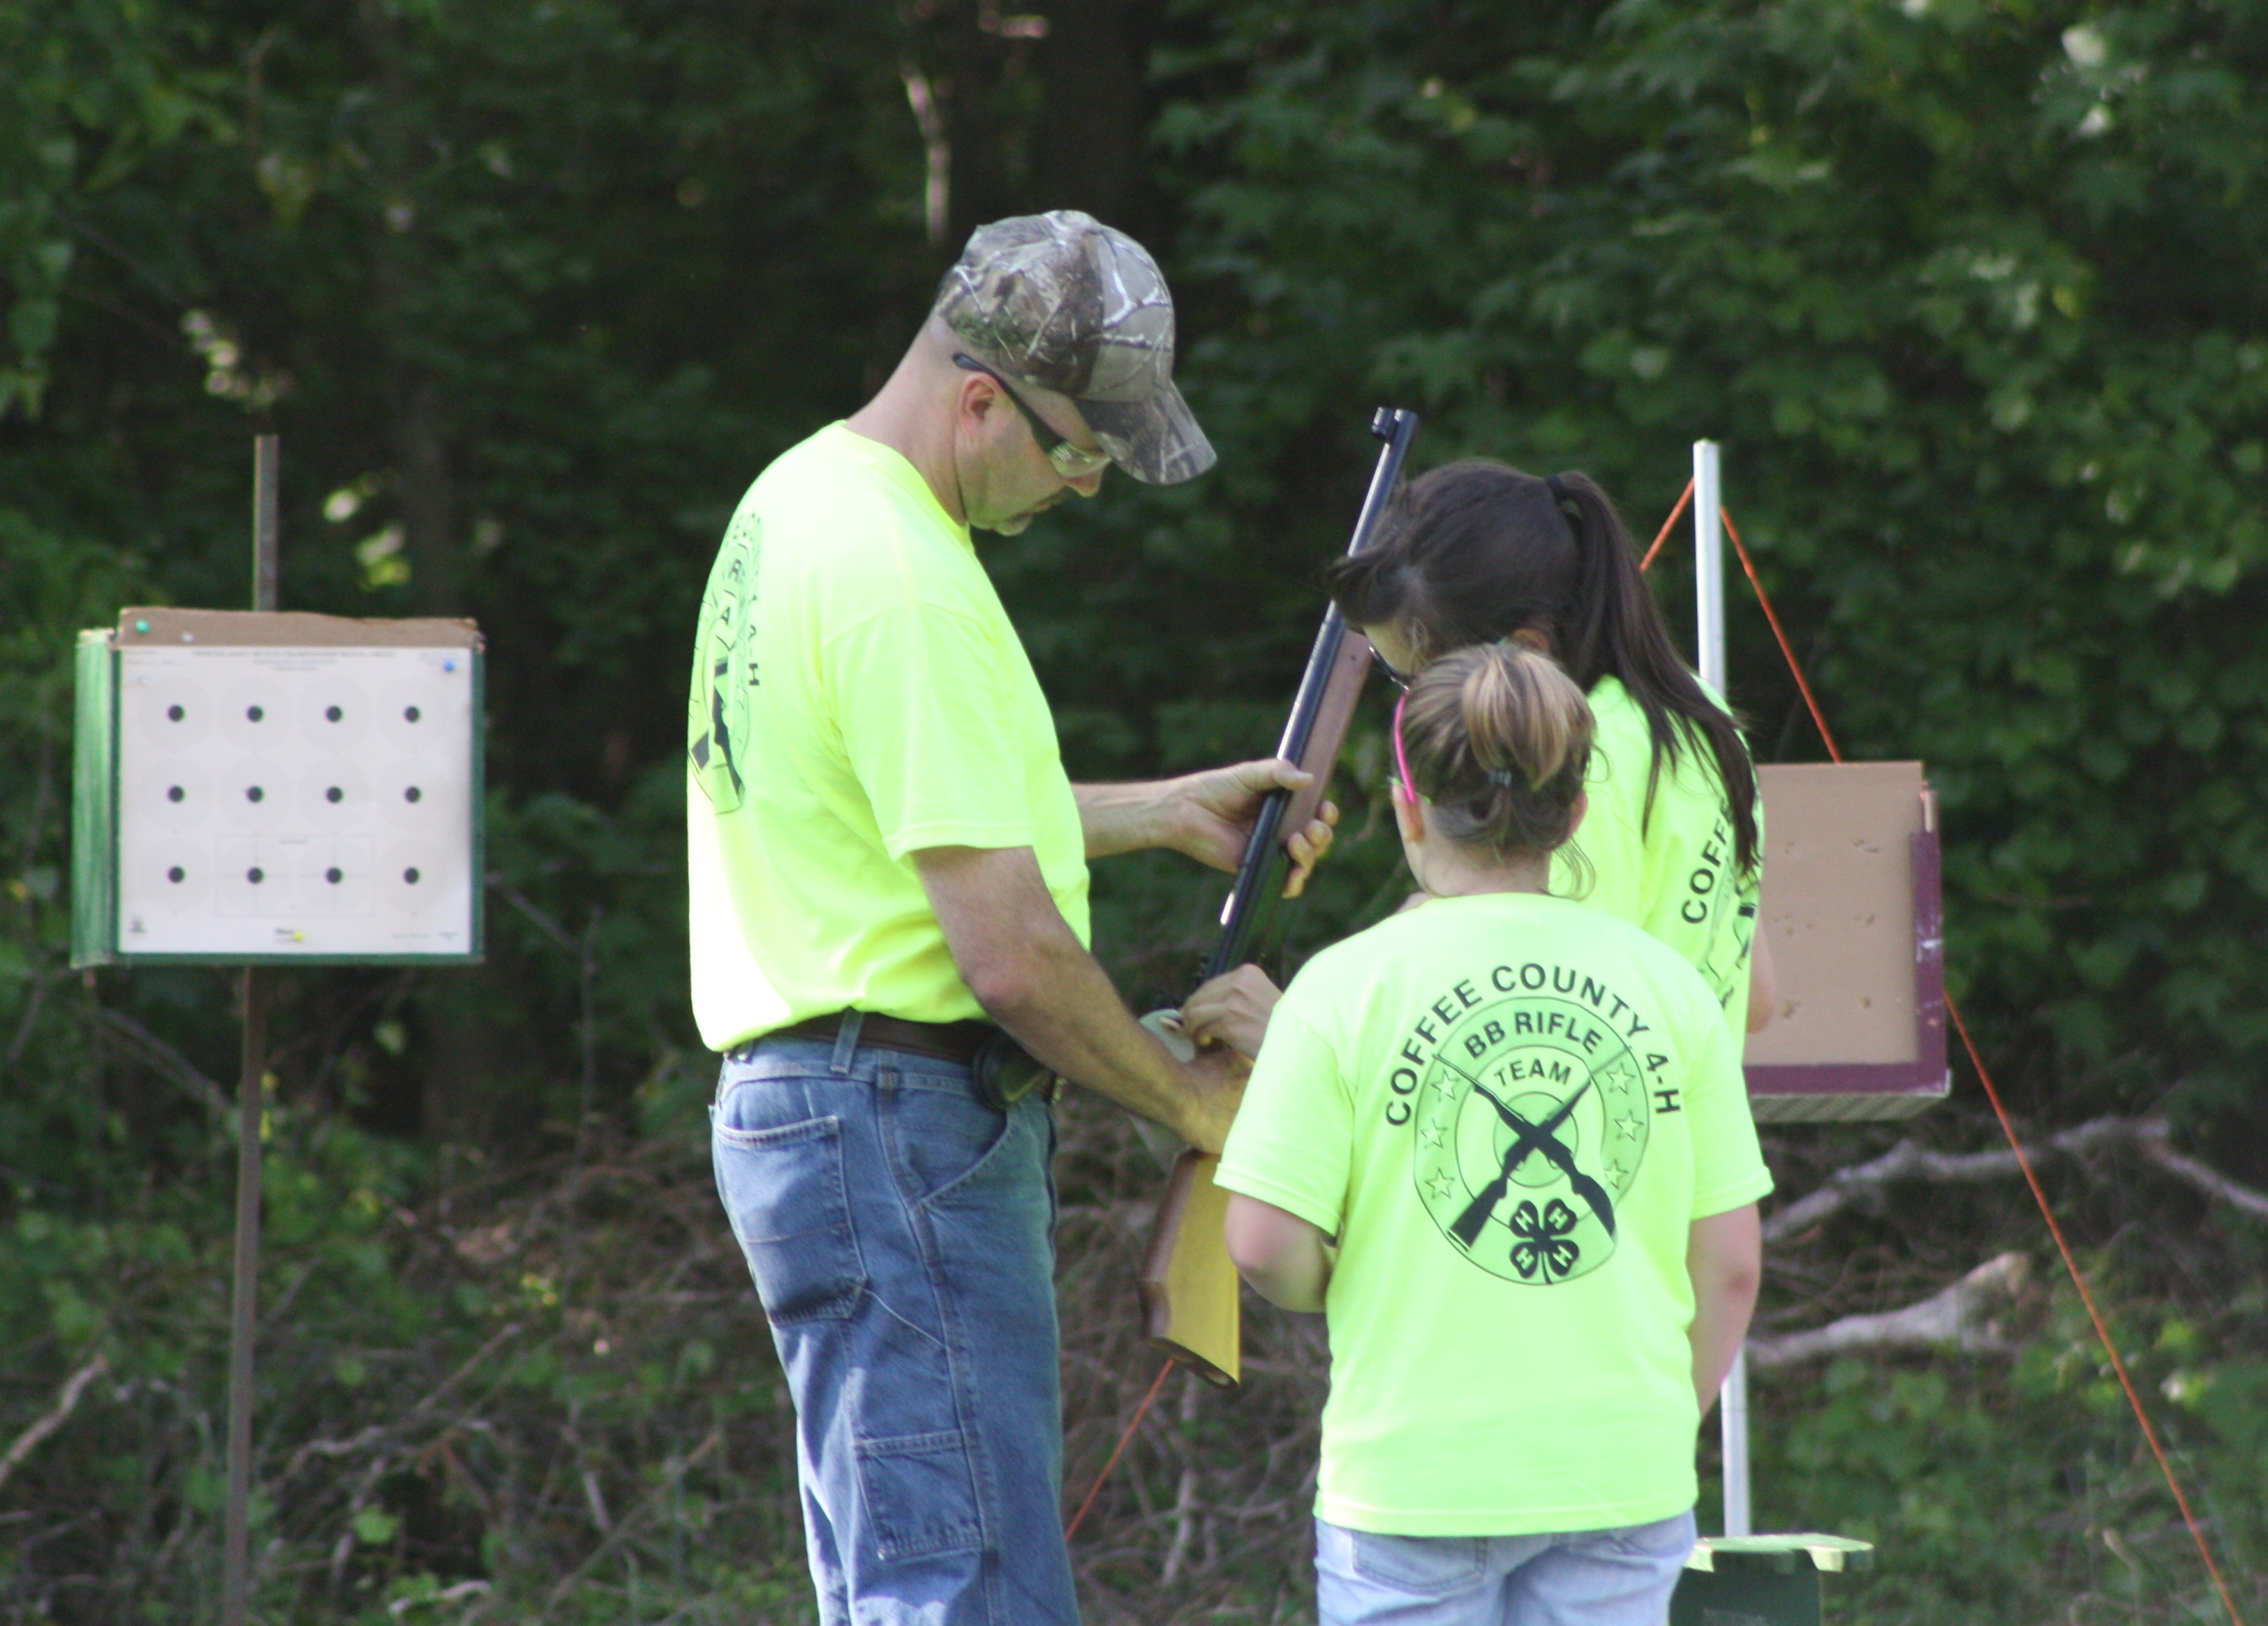 Brian Whitley, a certified rifle coach, is just one of the hundreds of volunteers that donate their time each year to the Georgia 4-H program. Whitley is shown competing in a coaches shoot with assistance from his daughter Danielle Whitley and Hannah Leggett.